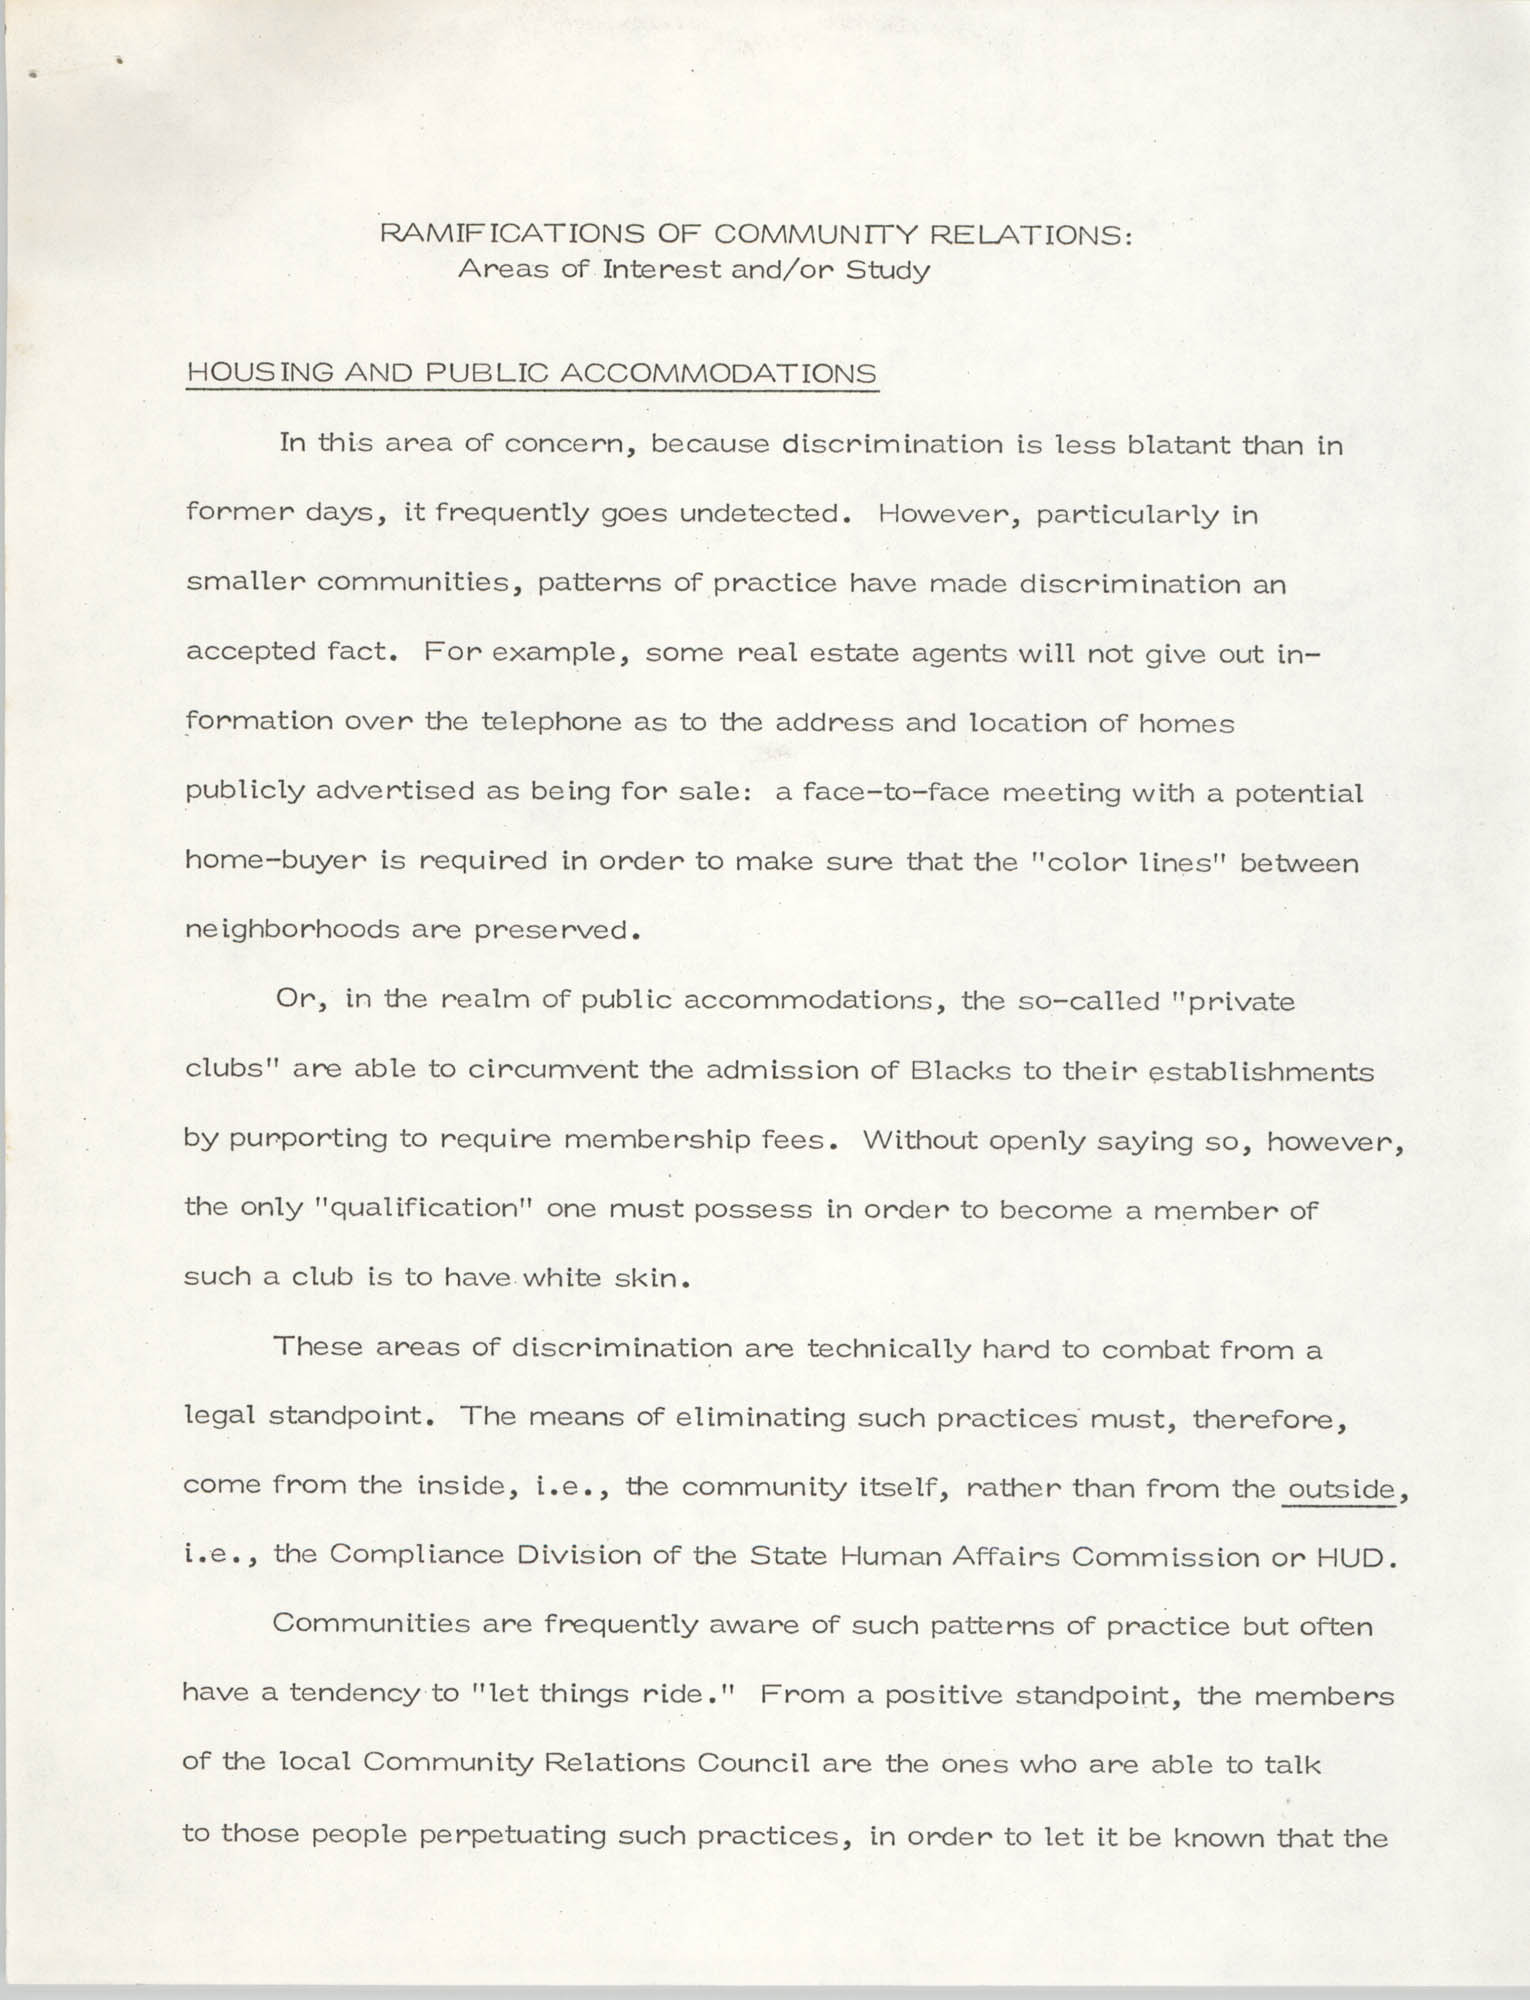 Ramifications of Community Relations: Areas of Interest and/or Study, Page 1